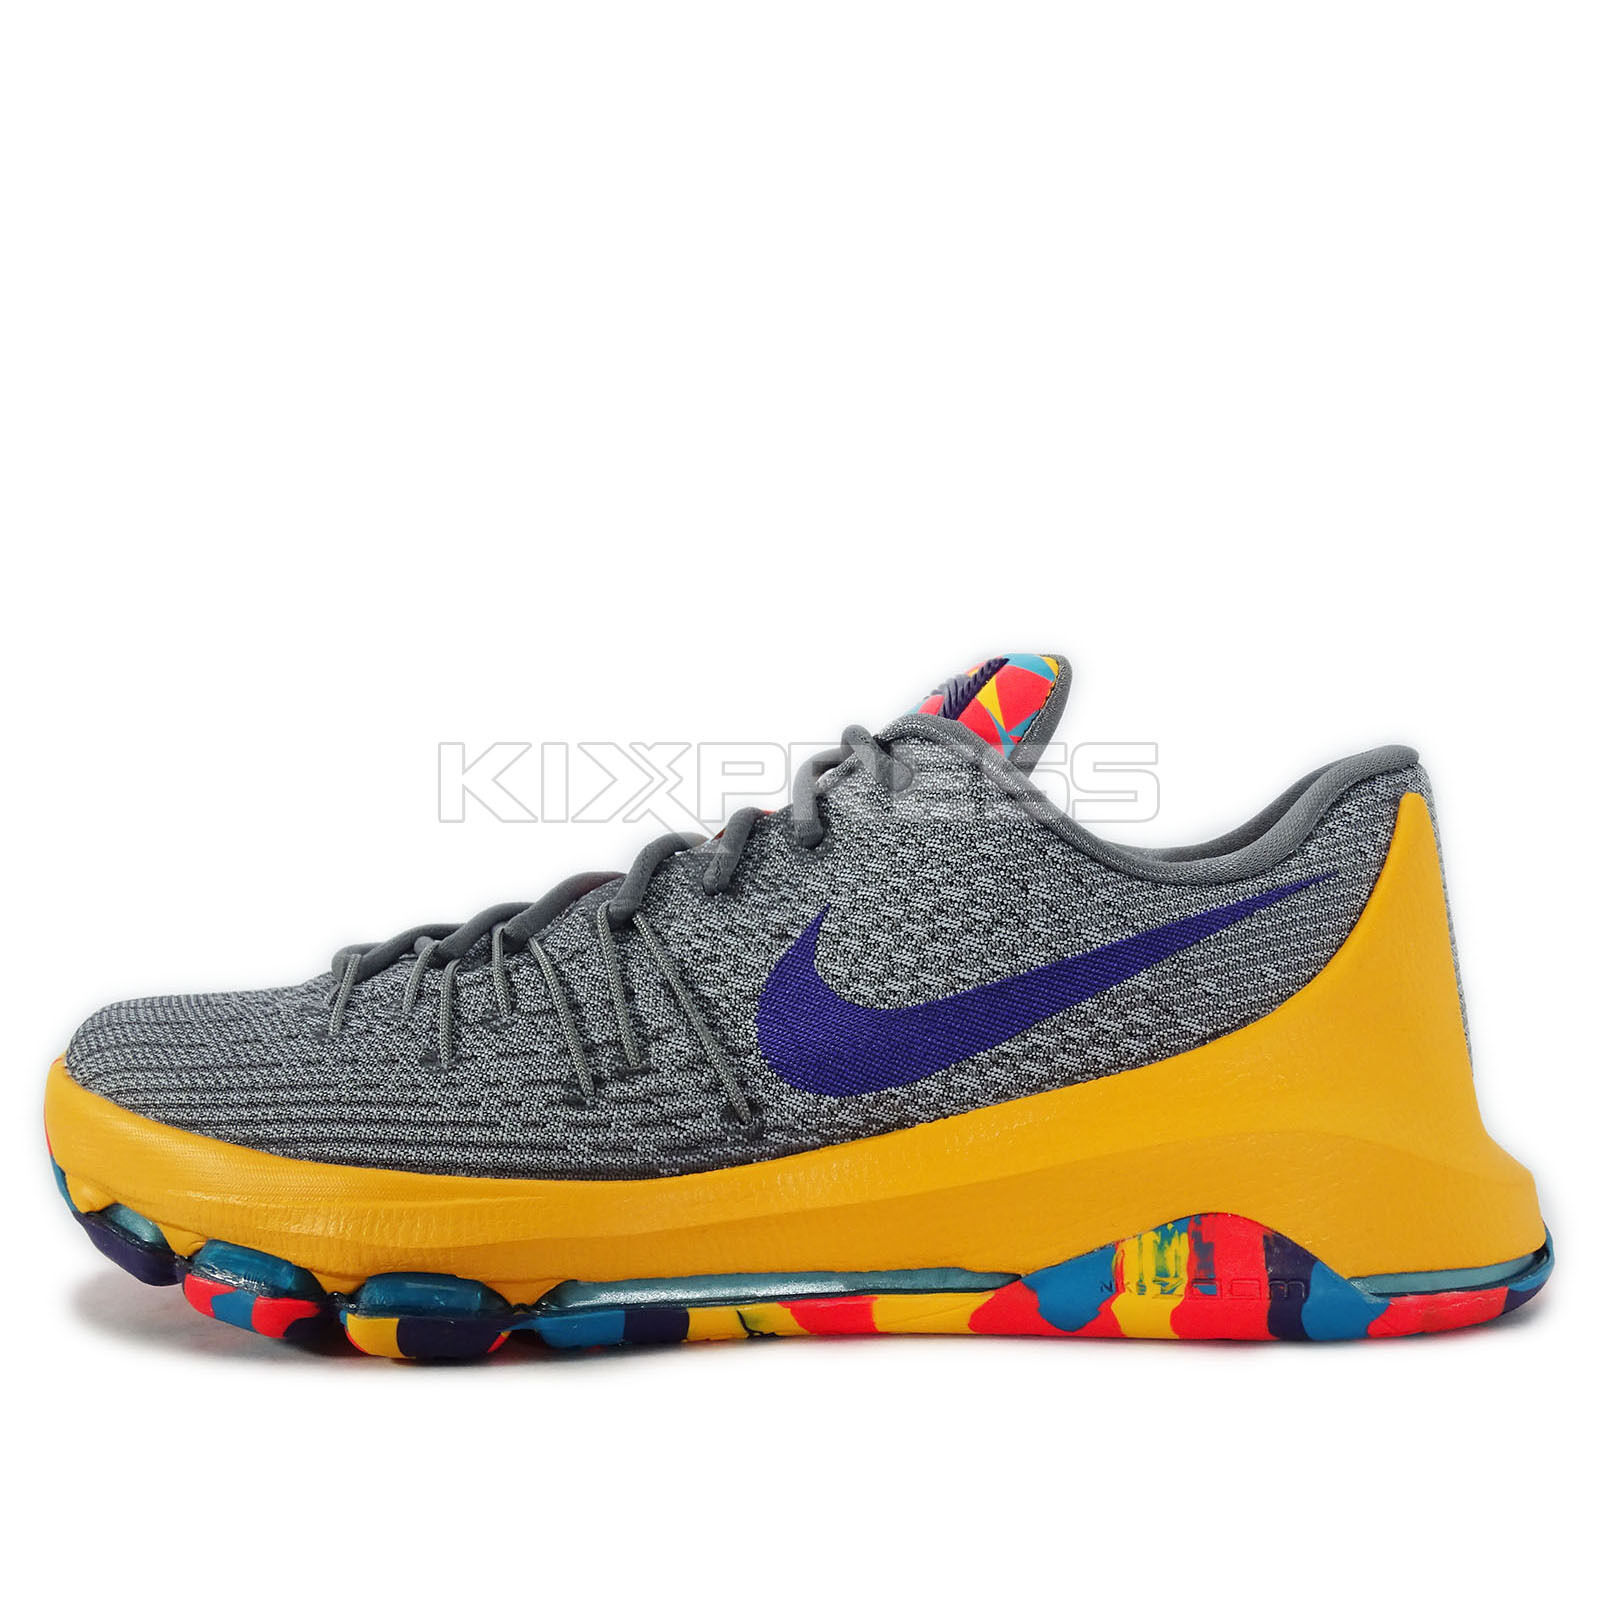 12bd8137d36 Nike KD 8 EP VIII Kevin Durant PC County OKC Mens Basketball Shoes ...